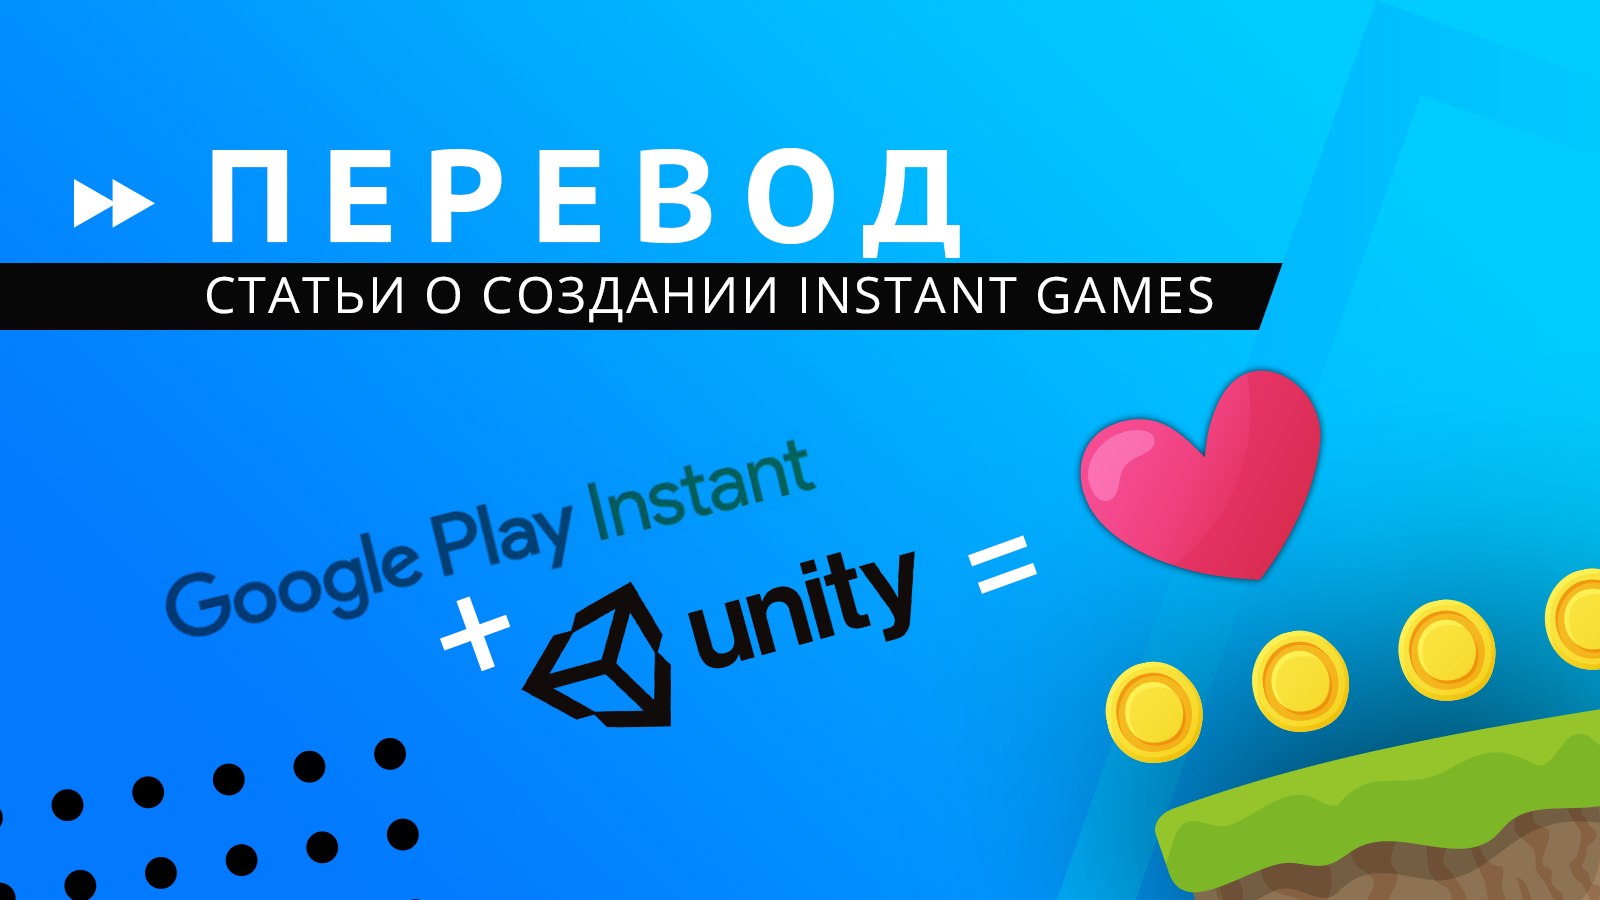 google_play_instant_unity